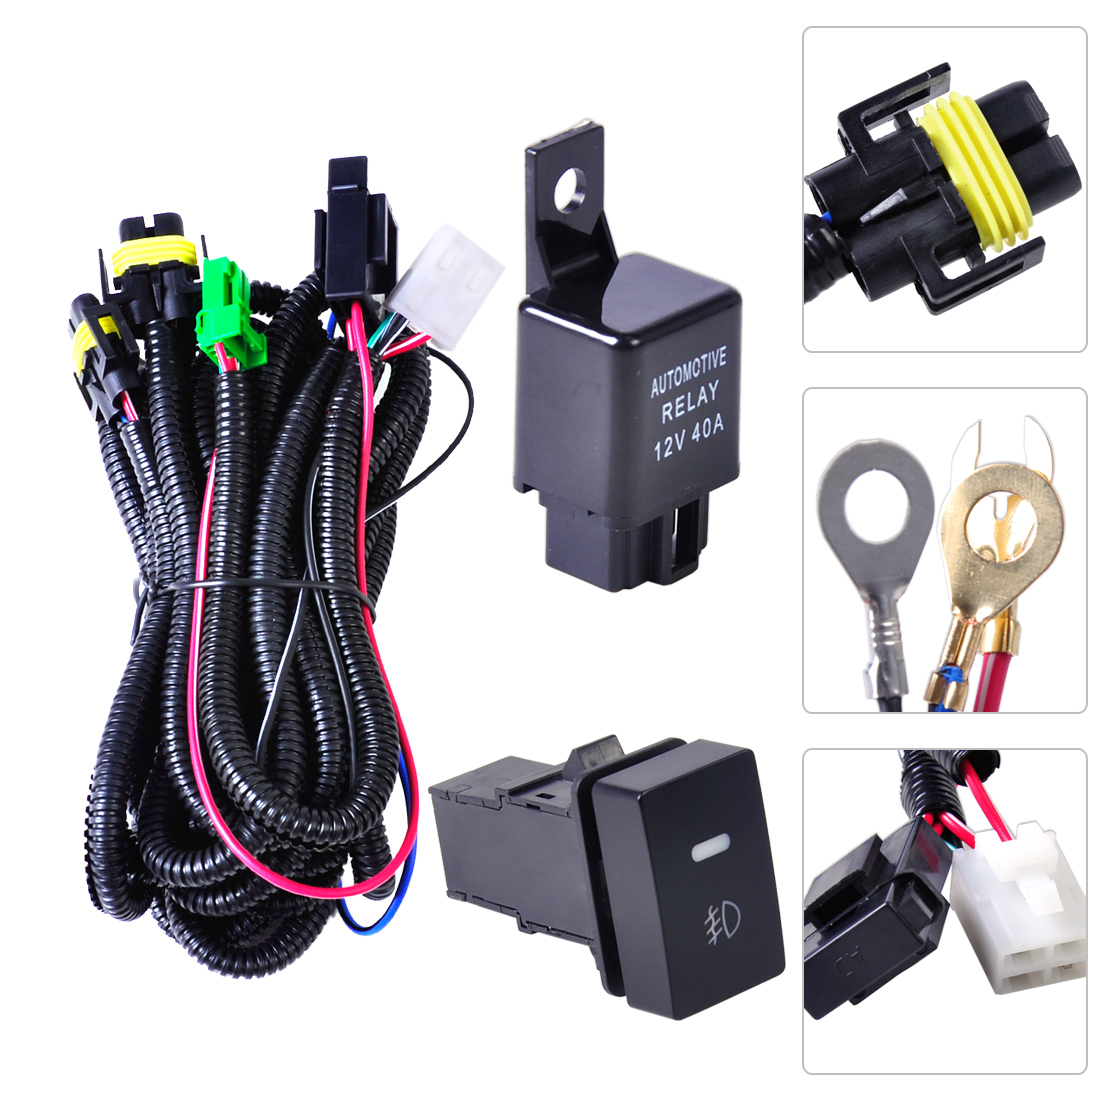 Subaru Fog Light Switch Wiring Trusted Diagrams Baja 2994 Online Shop Beler Harness Sockets Wire For H11 Nissan